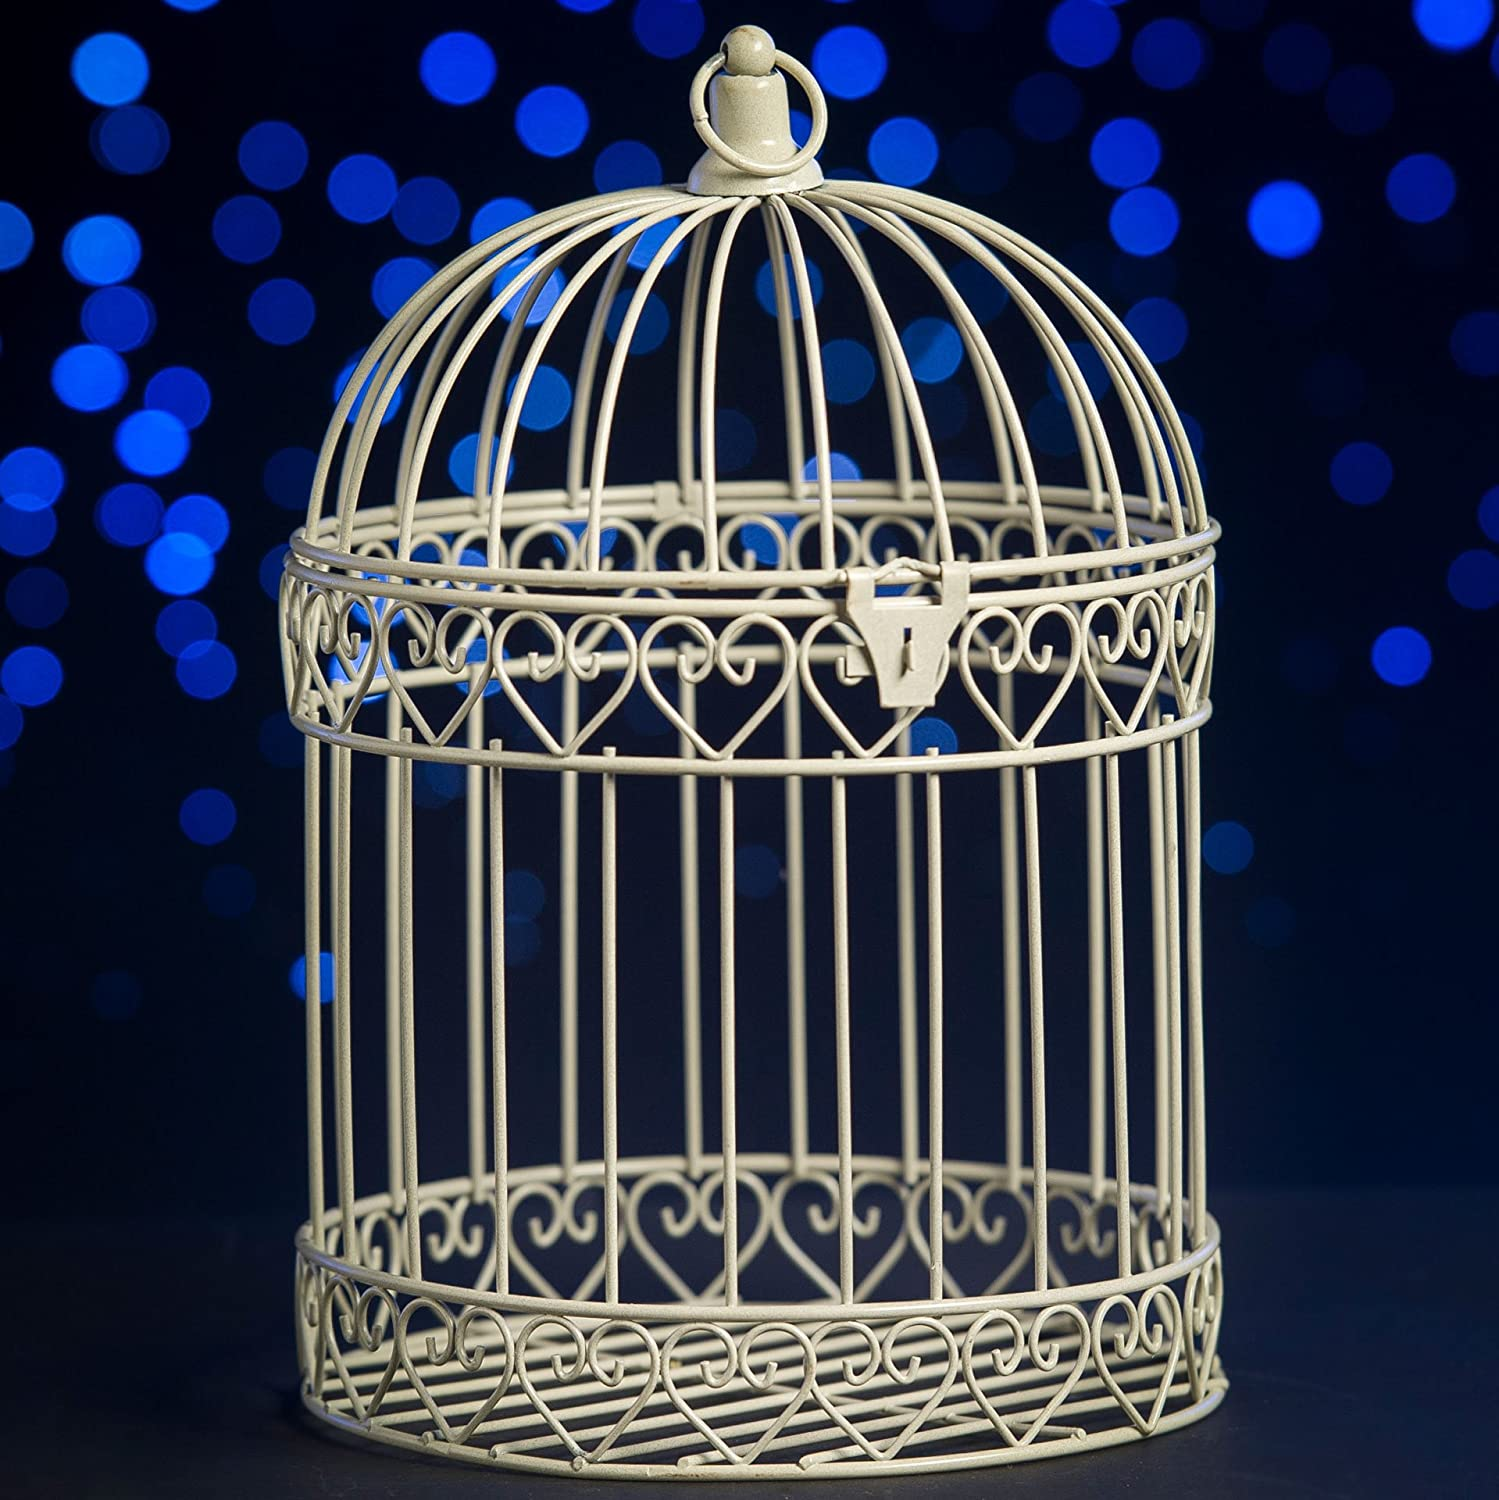 Indoor/Outdoor Decorative Bird Cage Latern Centerpiece-Ivory